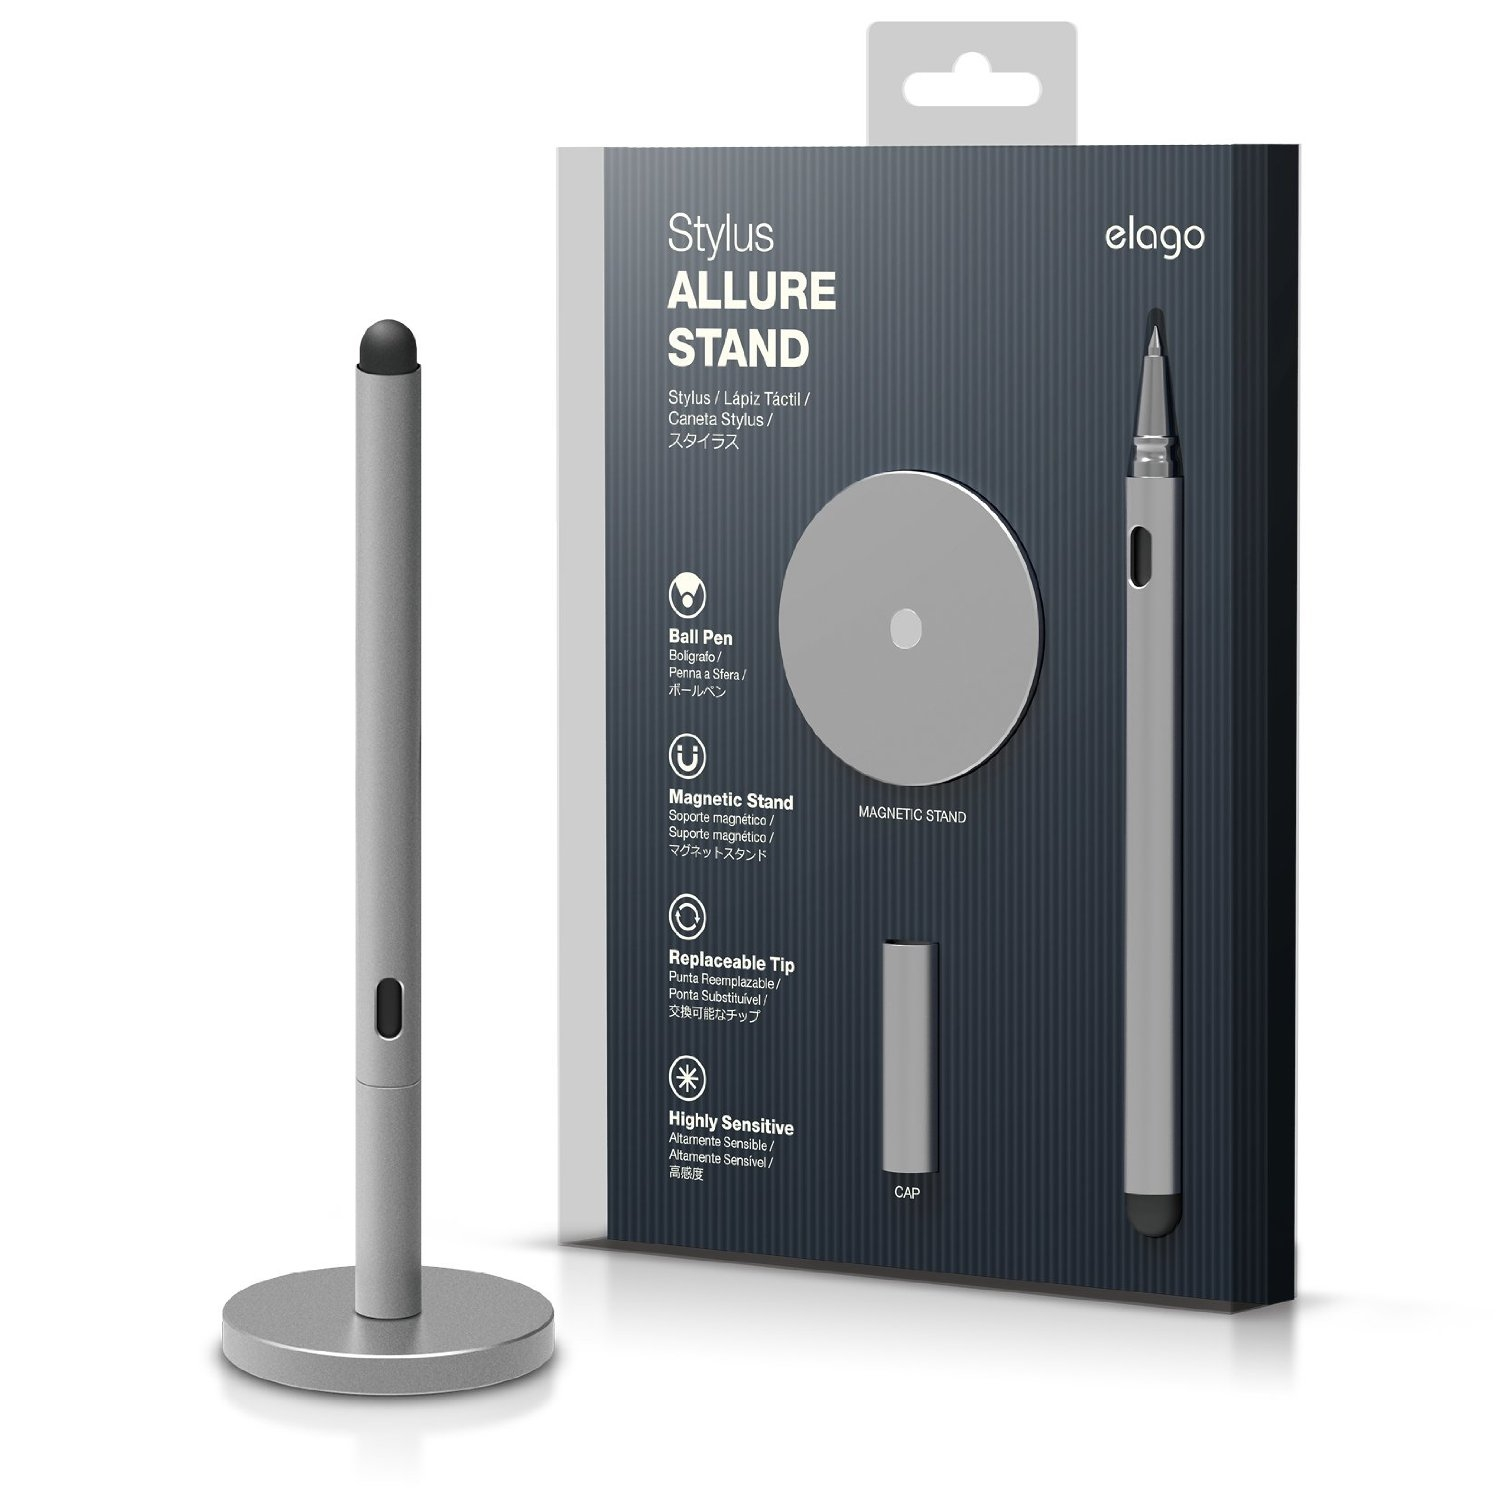 Elago Stylus Allure Stand for iPhone, iPad and Galaxy Tab